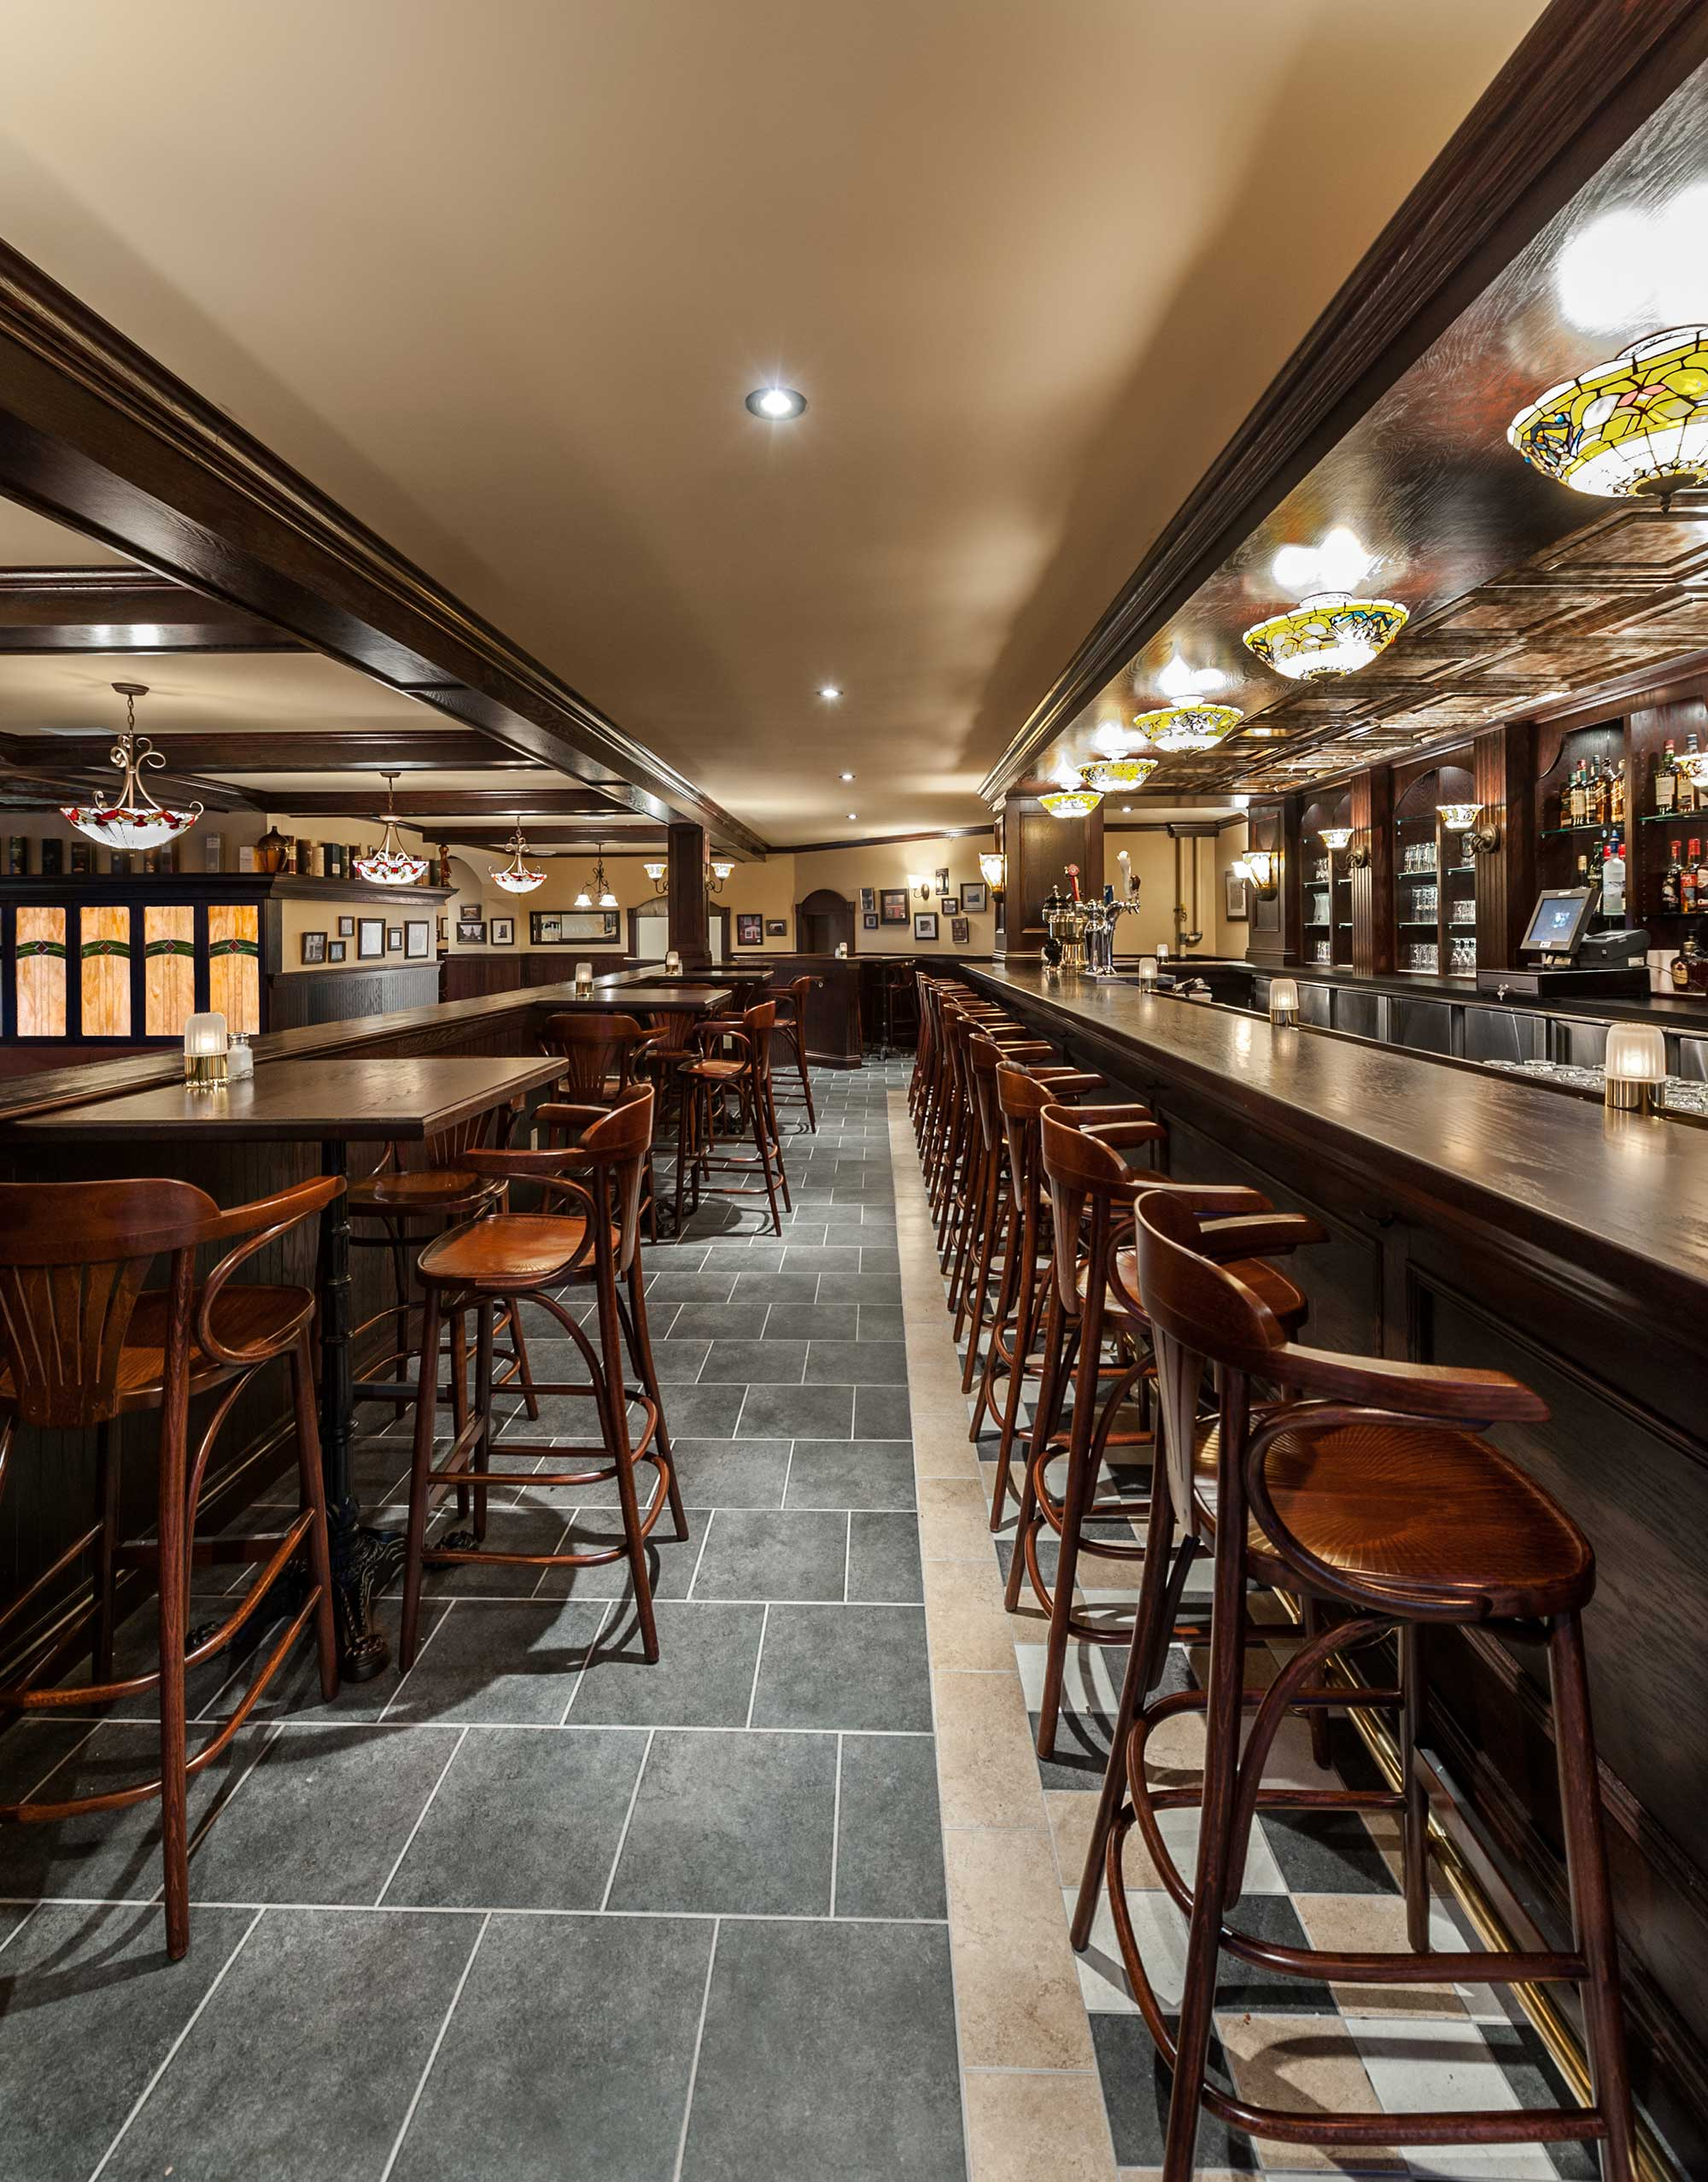 interior-design-restaurant-irish-pub-seating.jpg